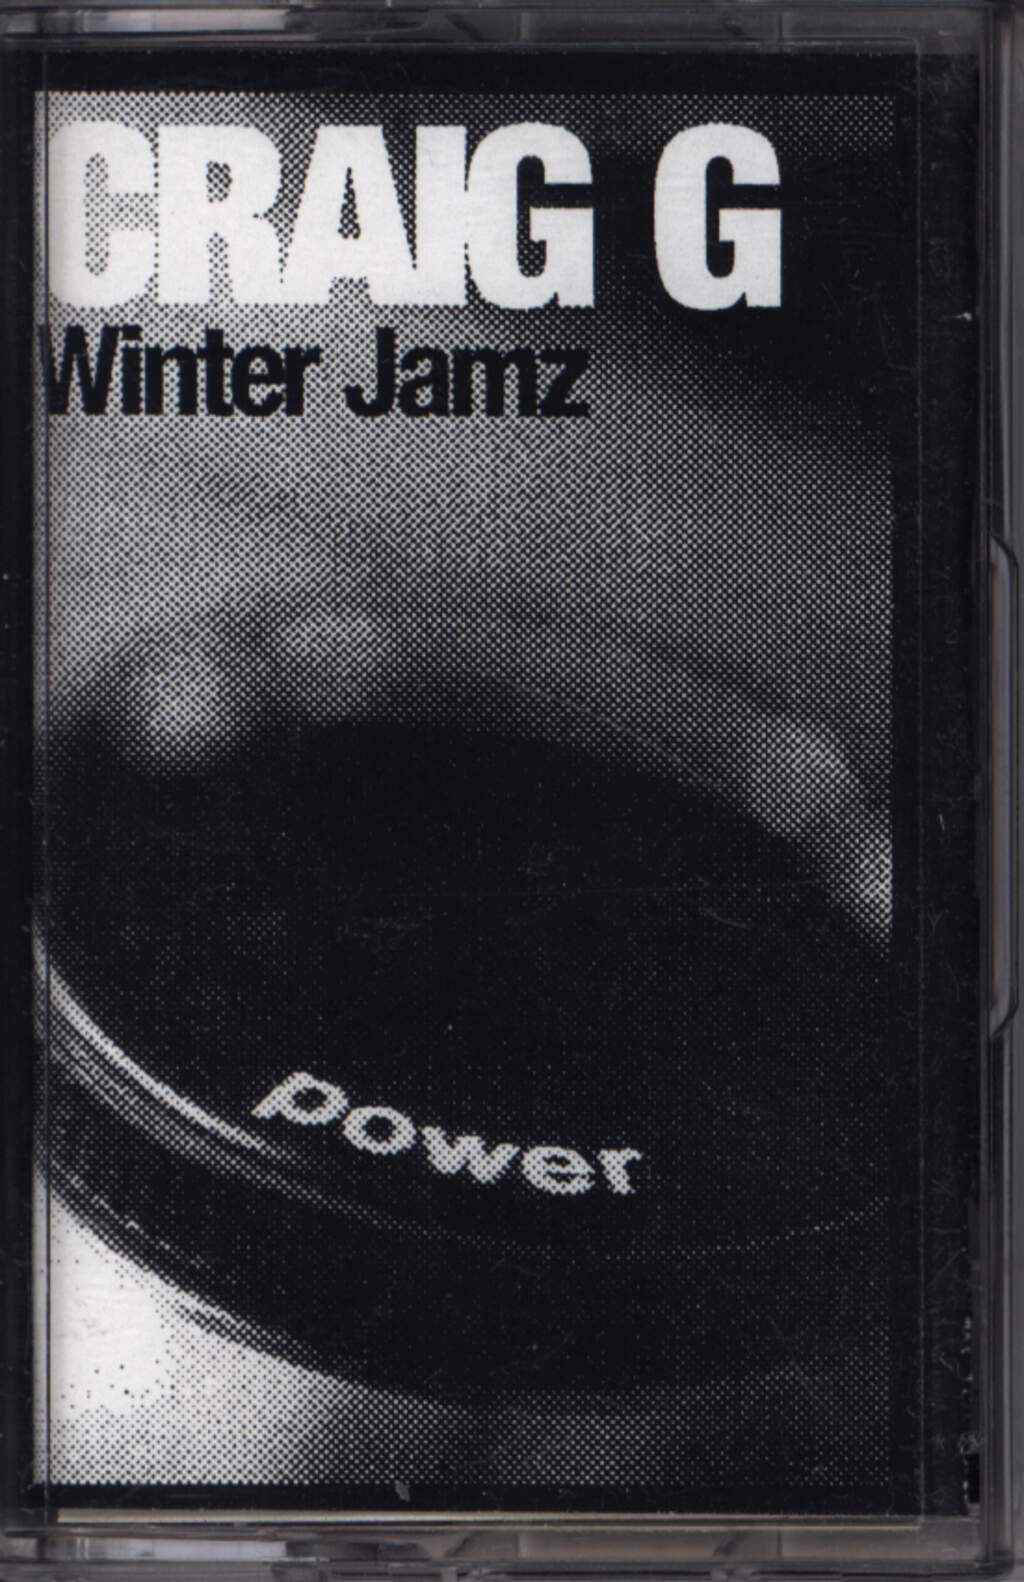 DJ Craig G: Winter Jamz, Tape